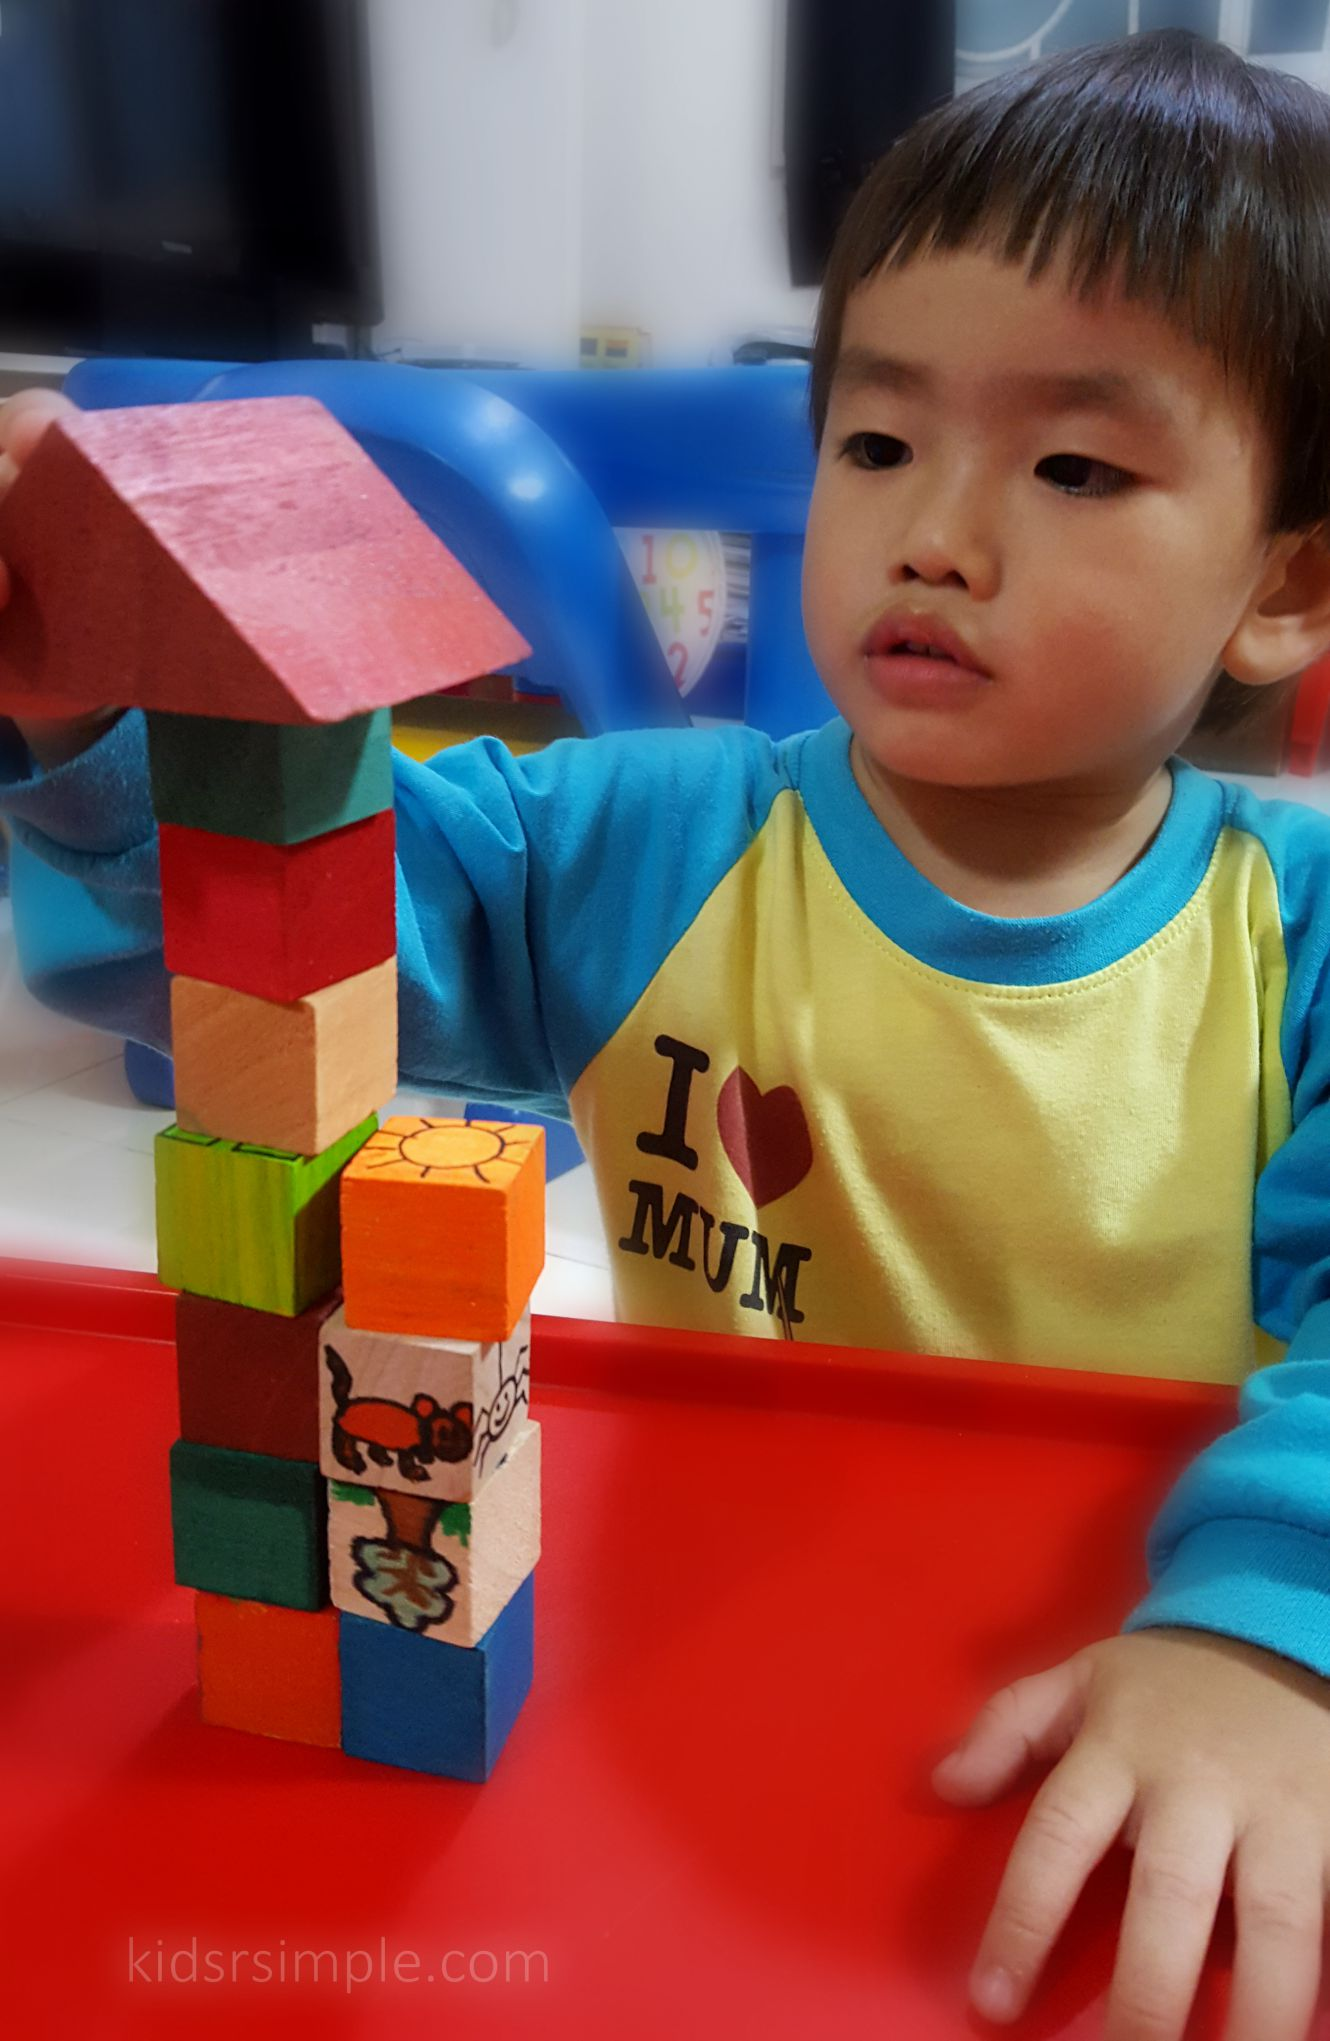 DIY Daiso wooden blocks fun Kids R Simple